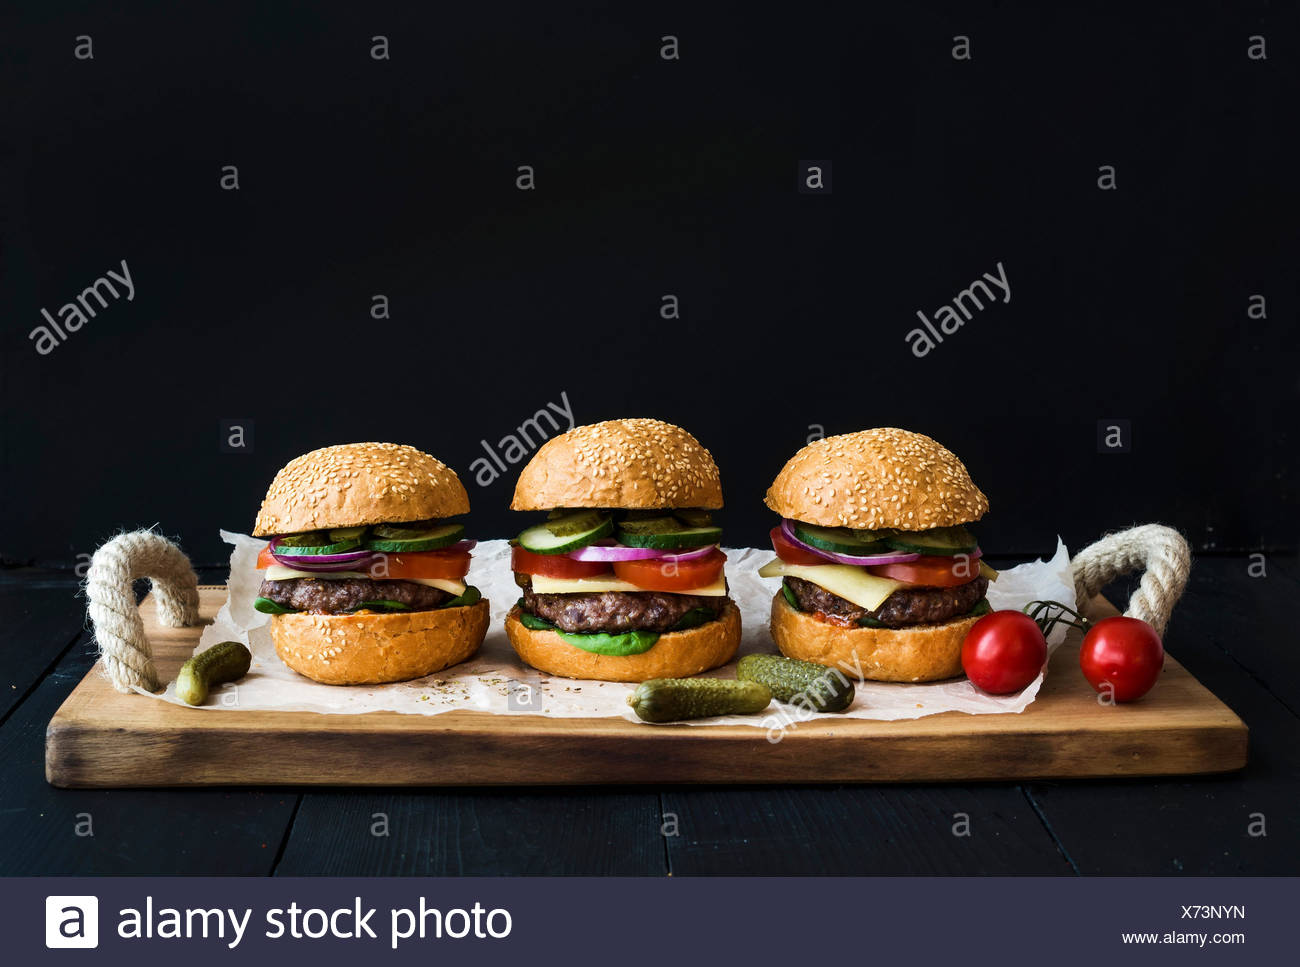 Fresh homemade burgers on wooden serving board over black  background. - Stock Image